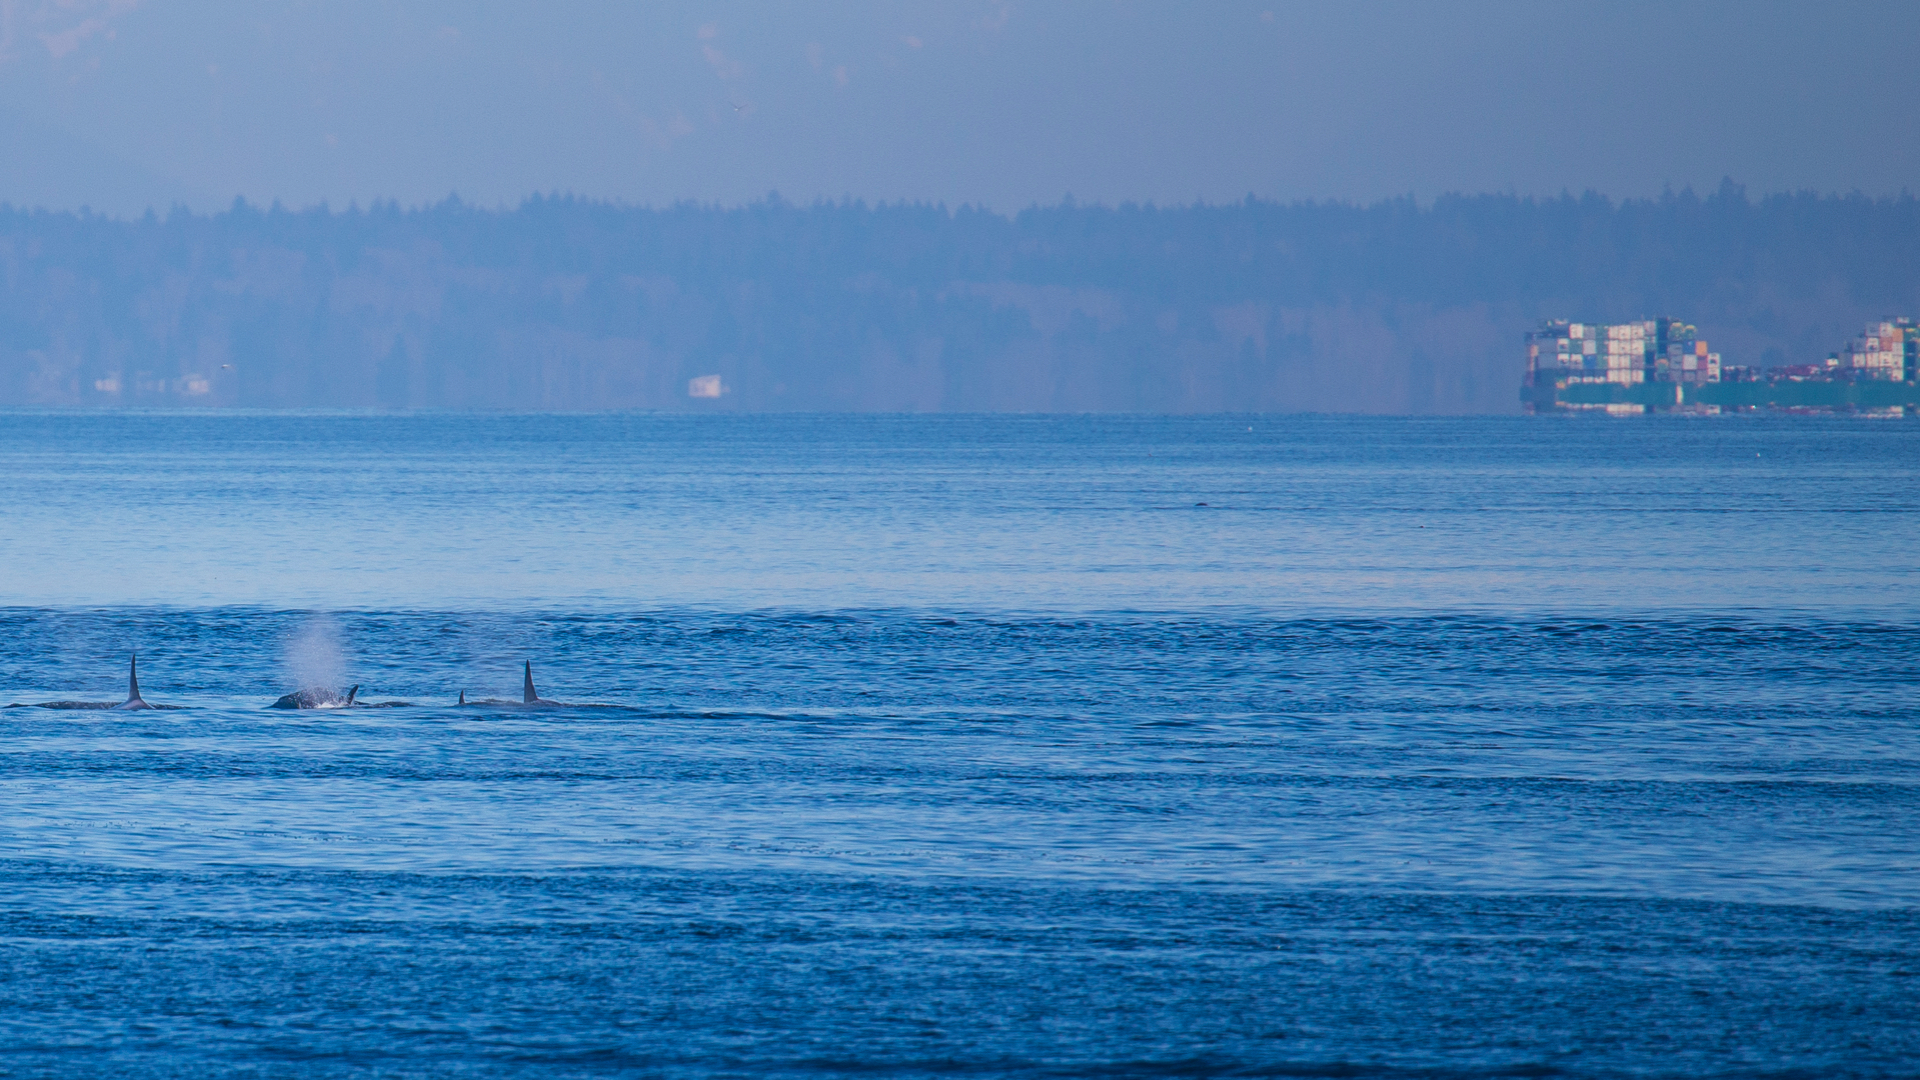 The little pod of orcas heading out into the distance.